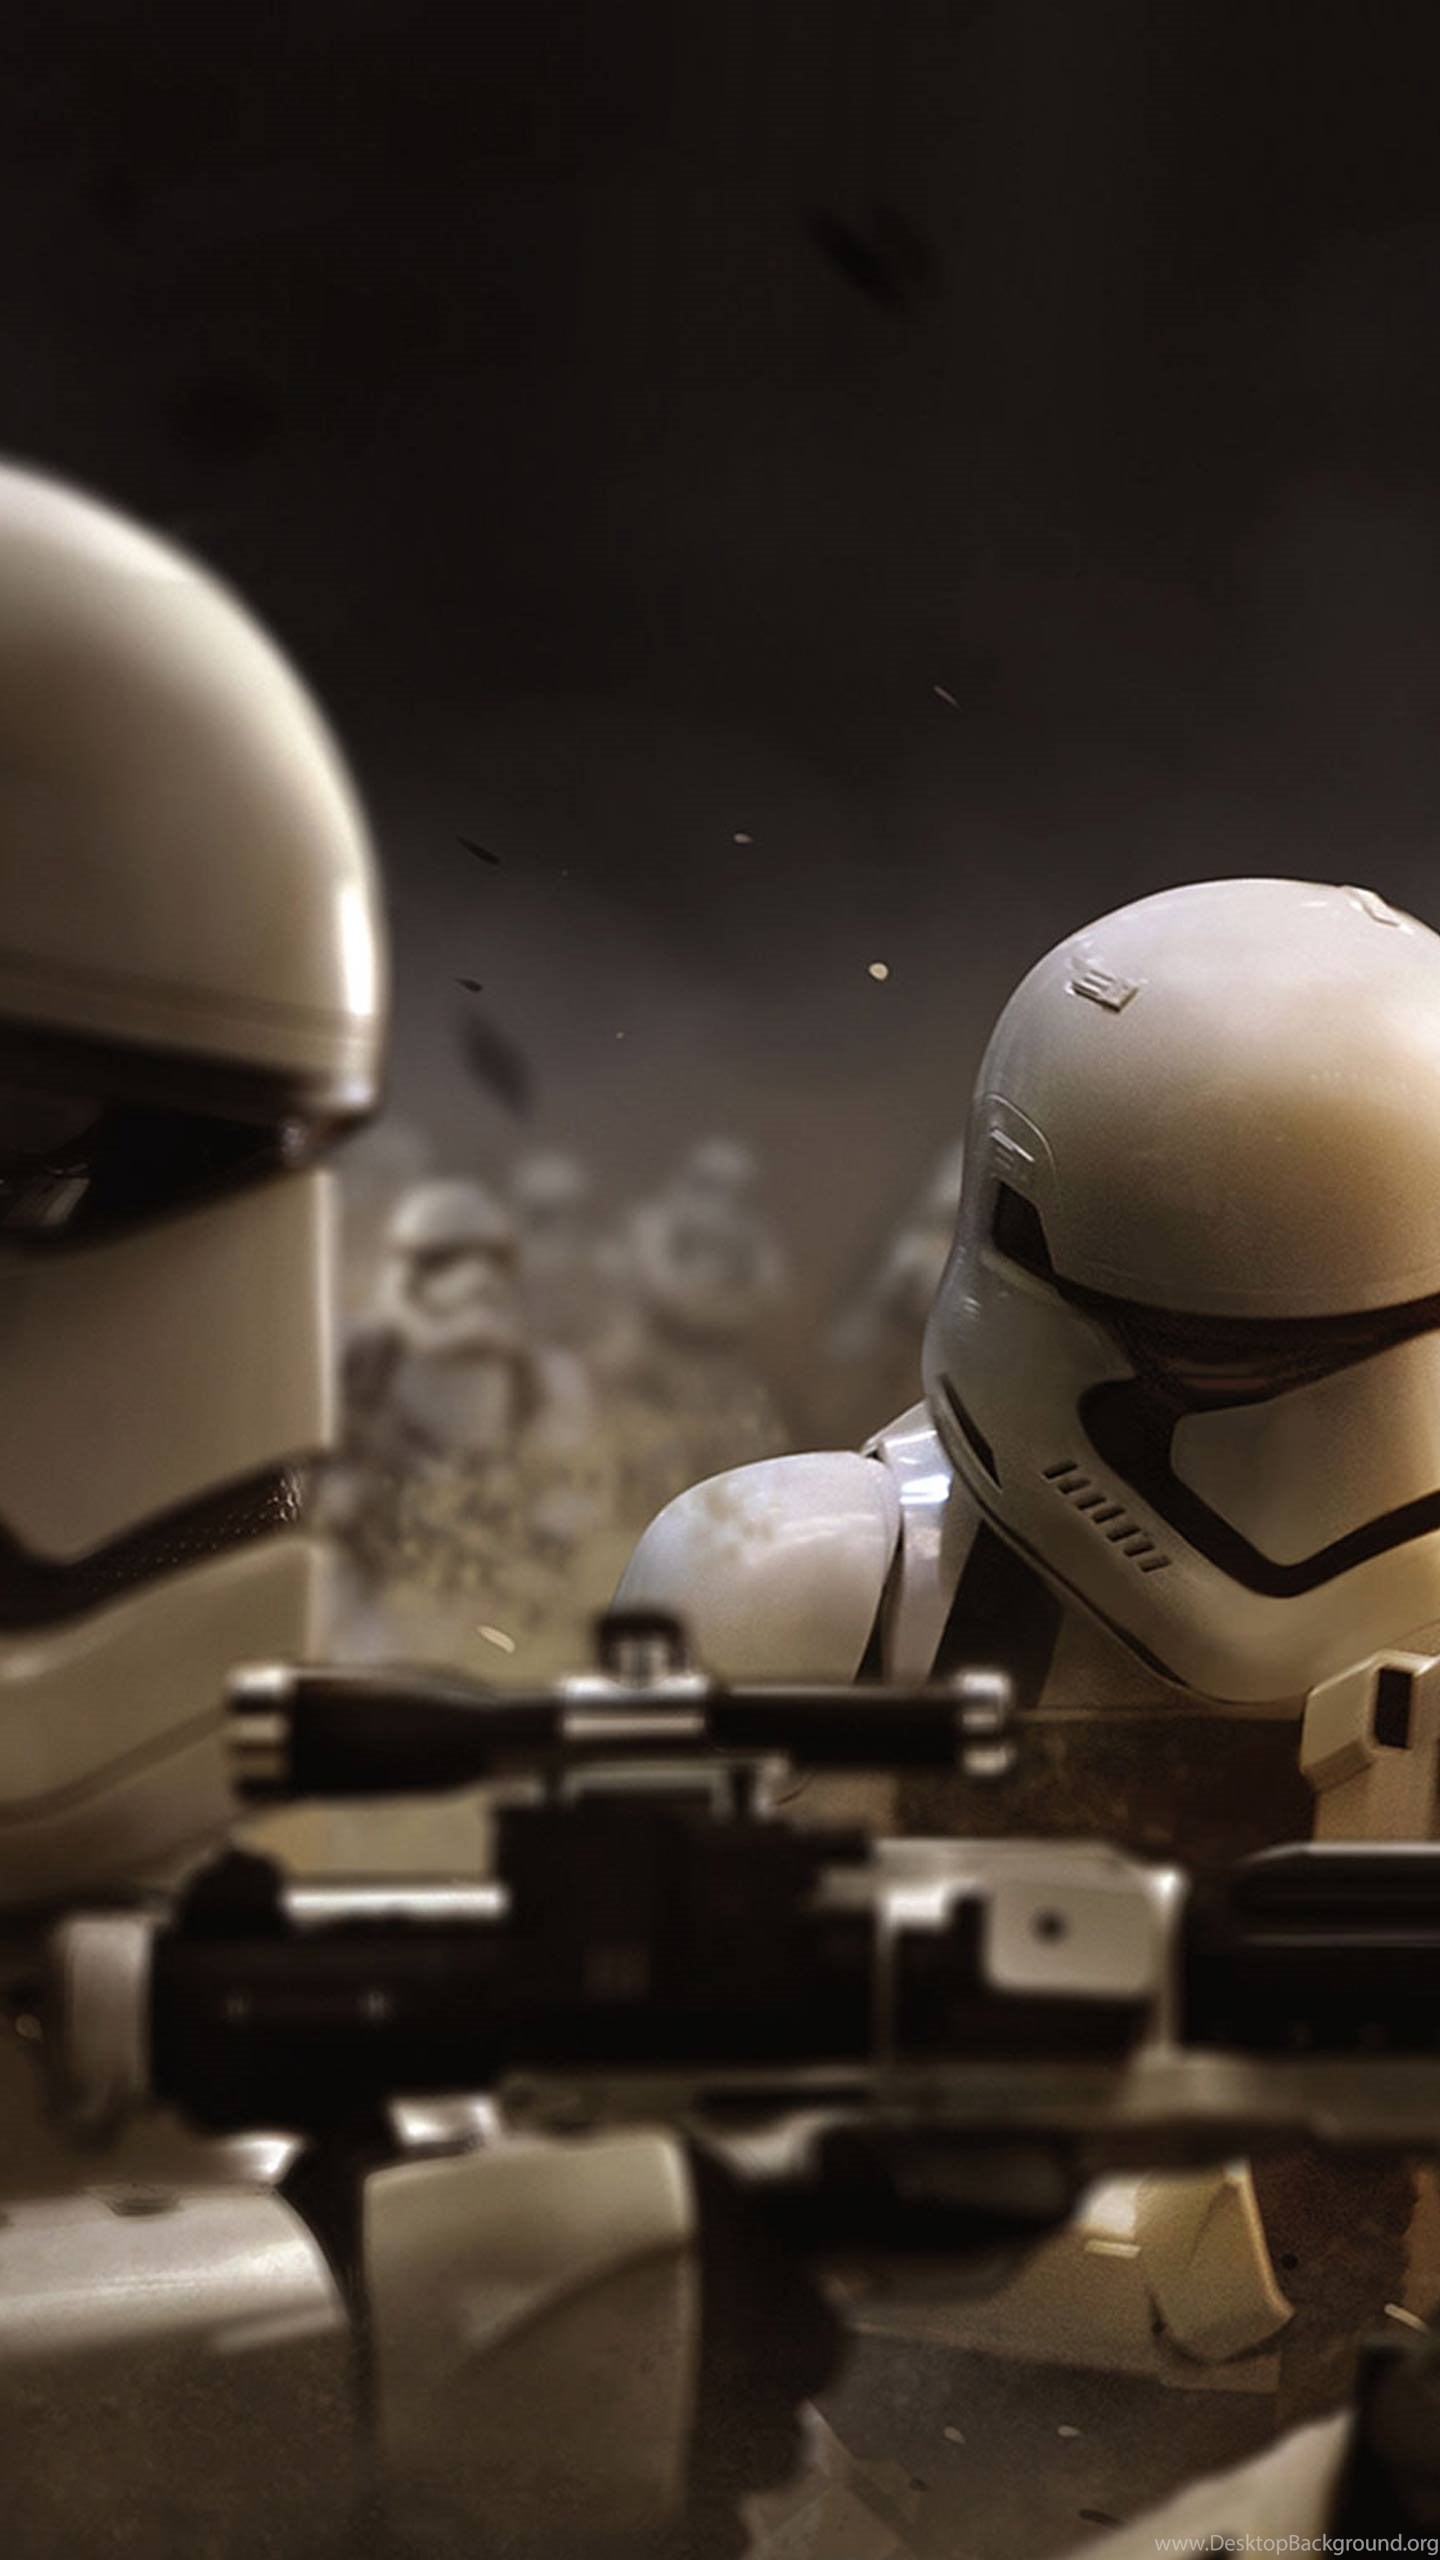 Star Wars The Force Awakens Wallpapers For Your Iphone 6s And Desktop Background